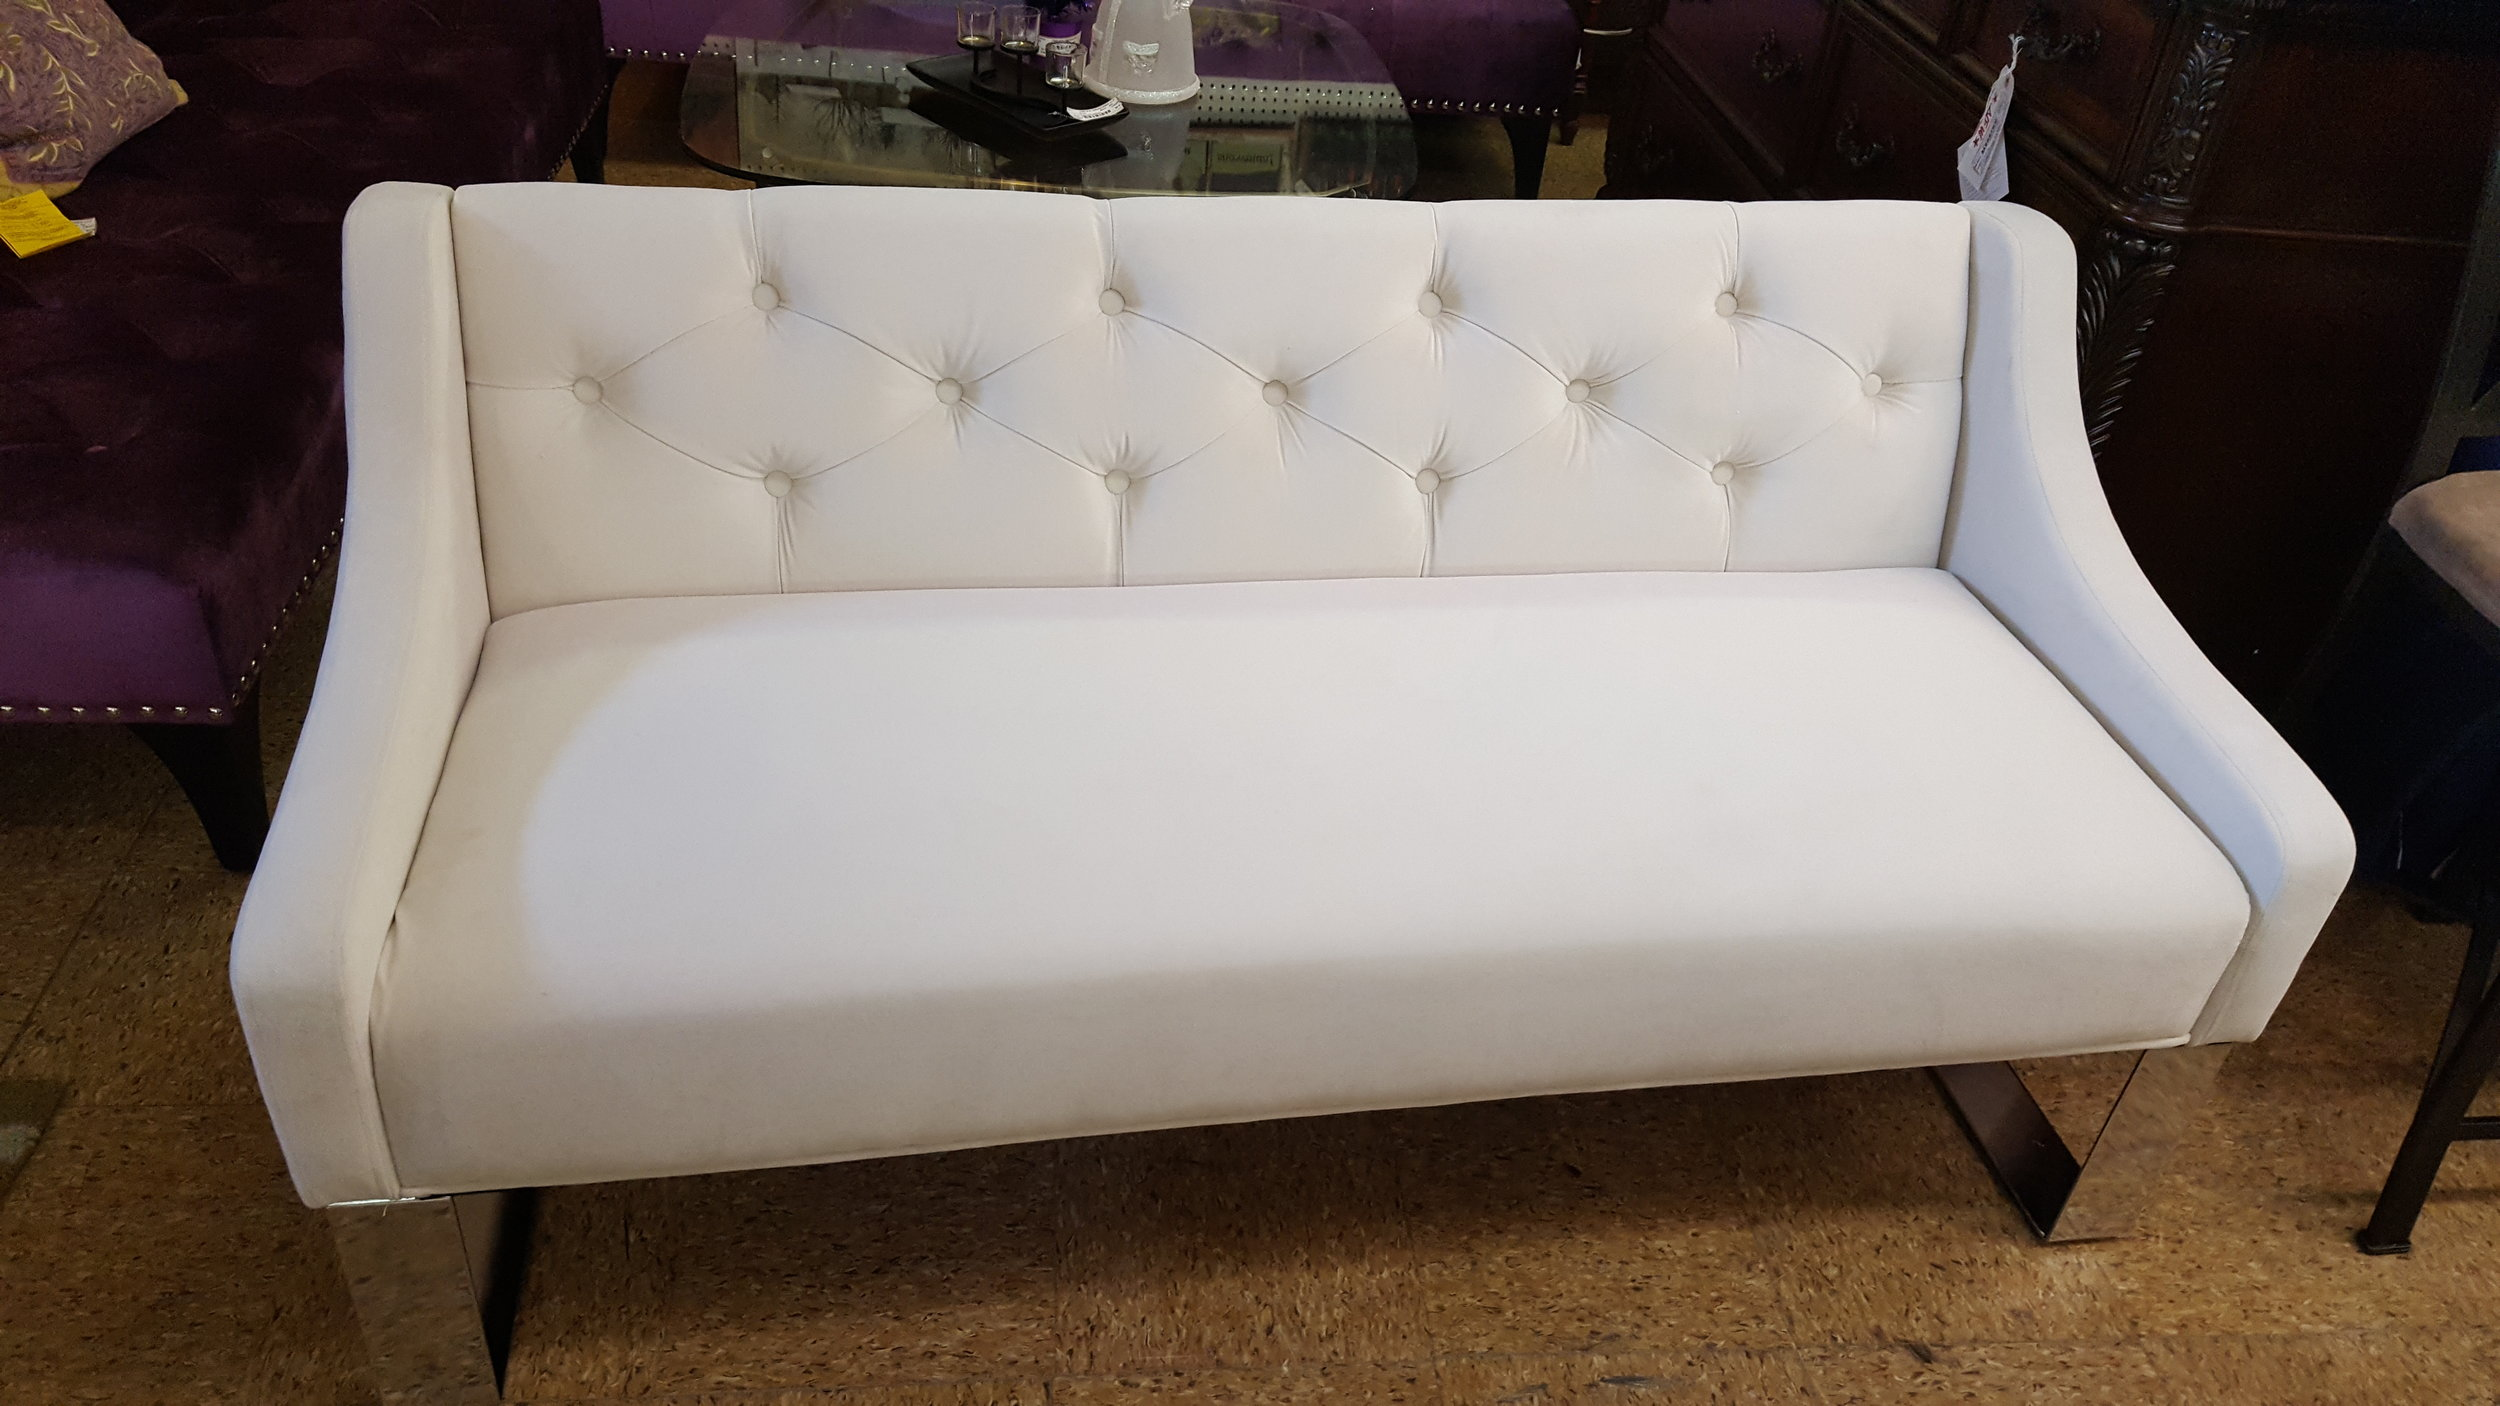 Couches here are beautiful.